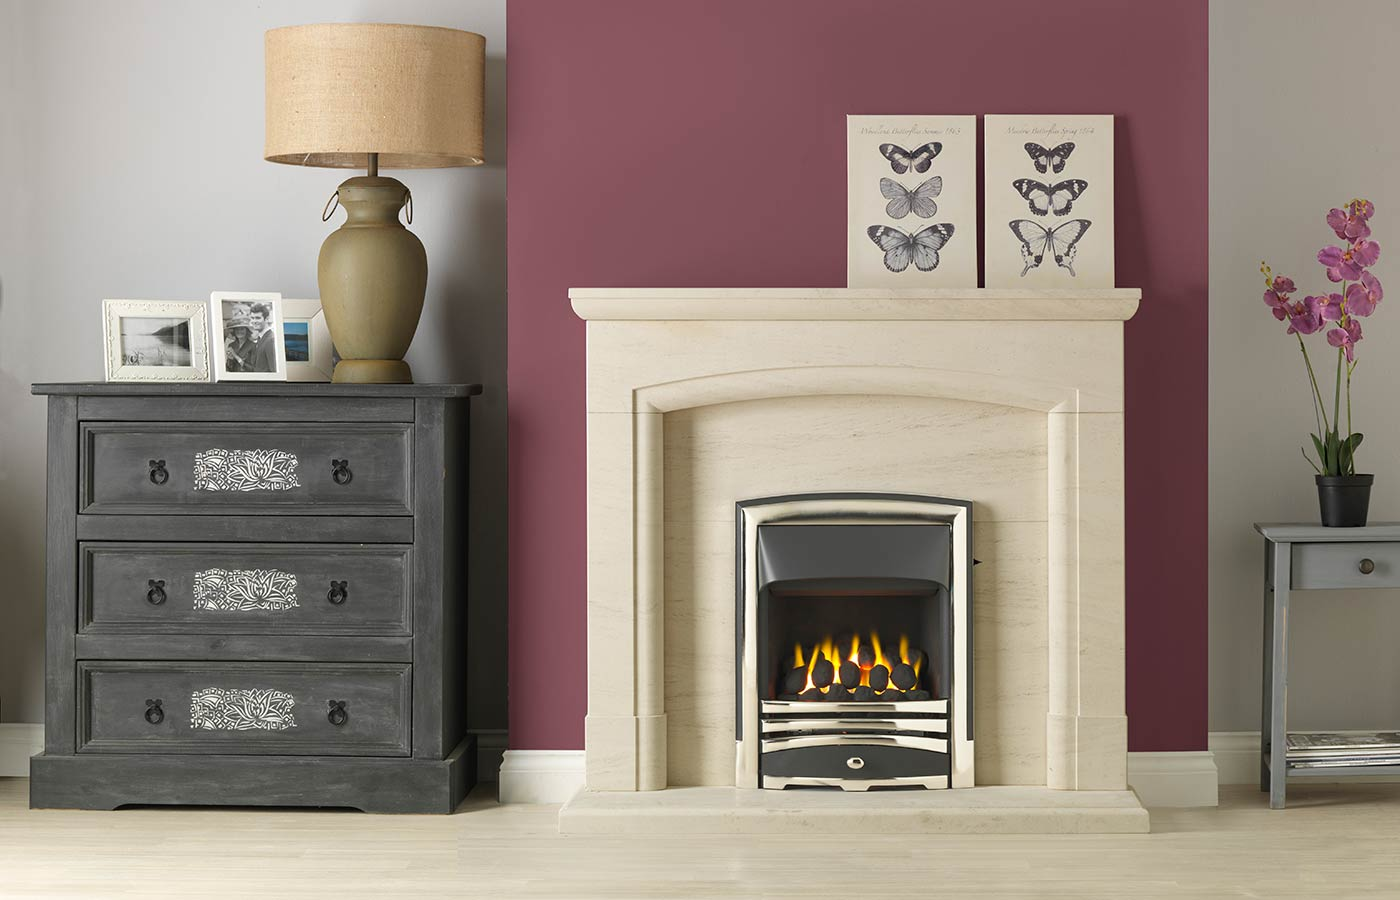 "Swainby 48"" Fireplace Suite in Portuguese Limestone with Vision Callisto (Chrome) and Open-Fronted Gas Convector Fire (Slide Control)"